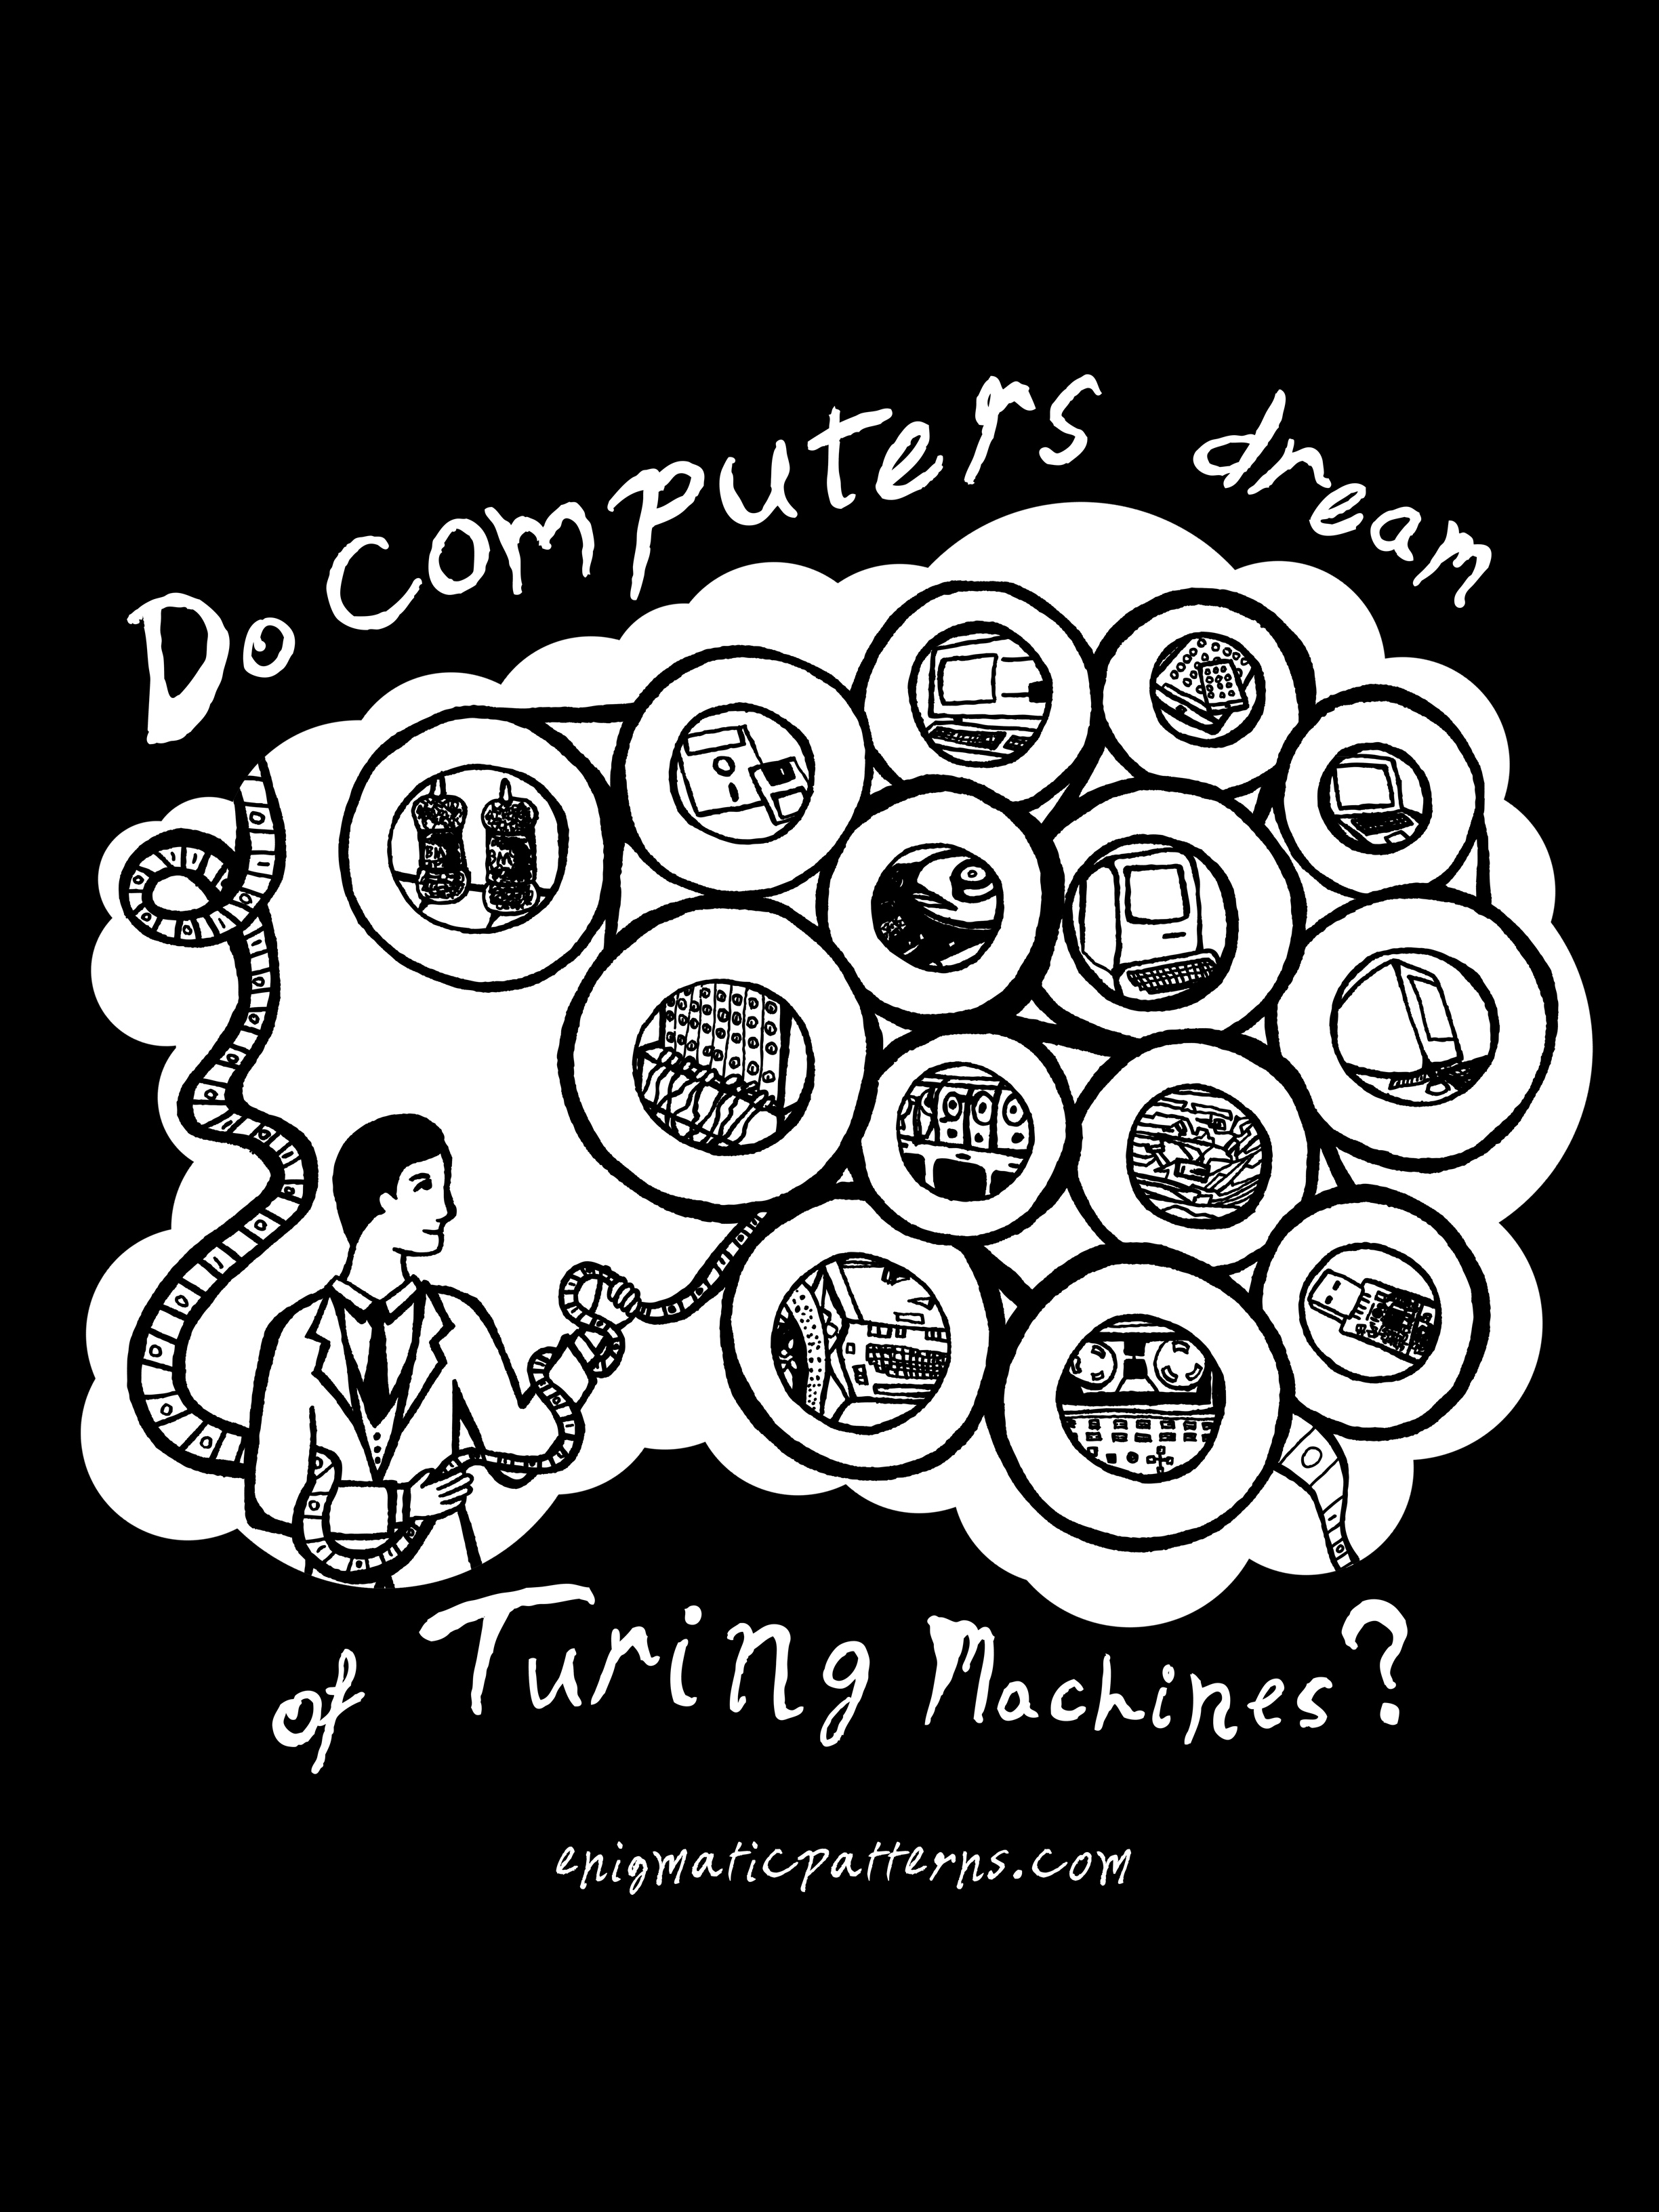 Original turing machine